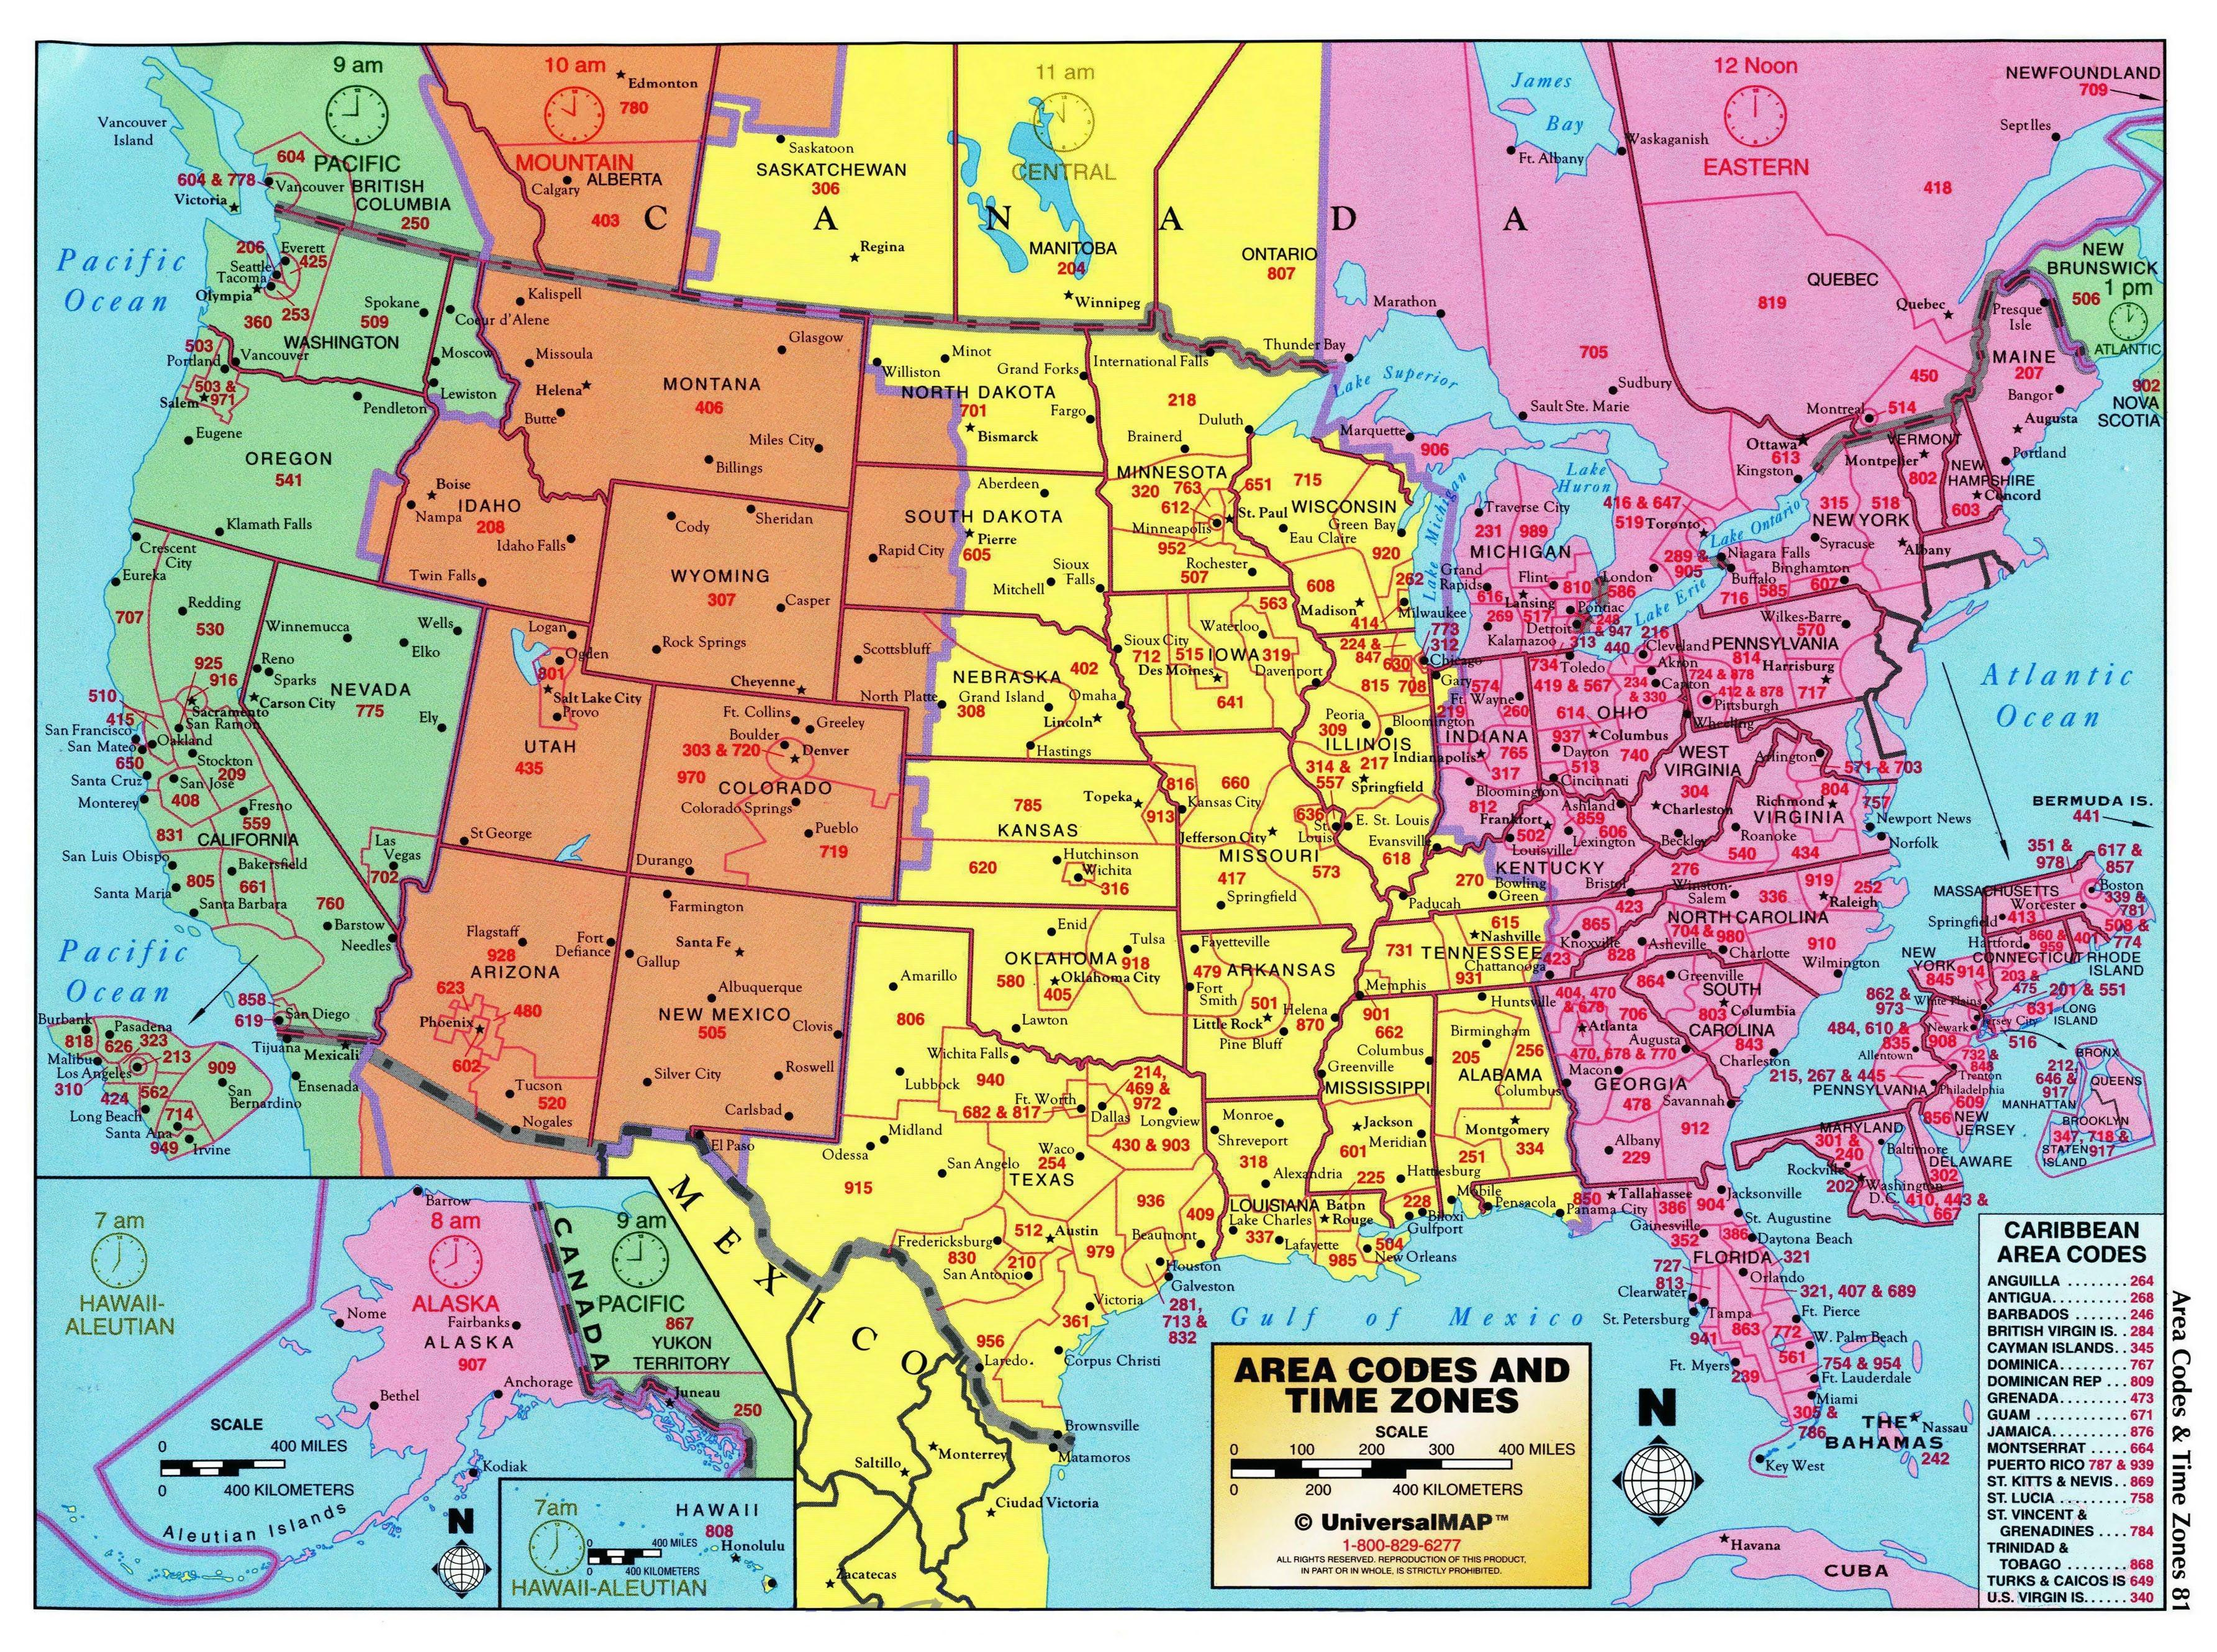 Area Codes And Time Zones Of The United States And